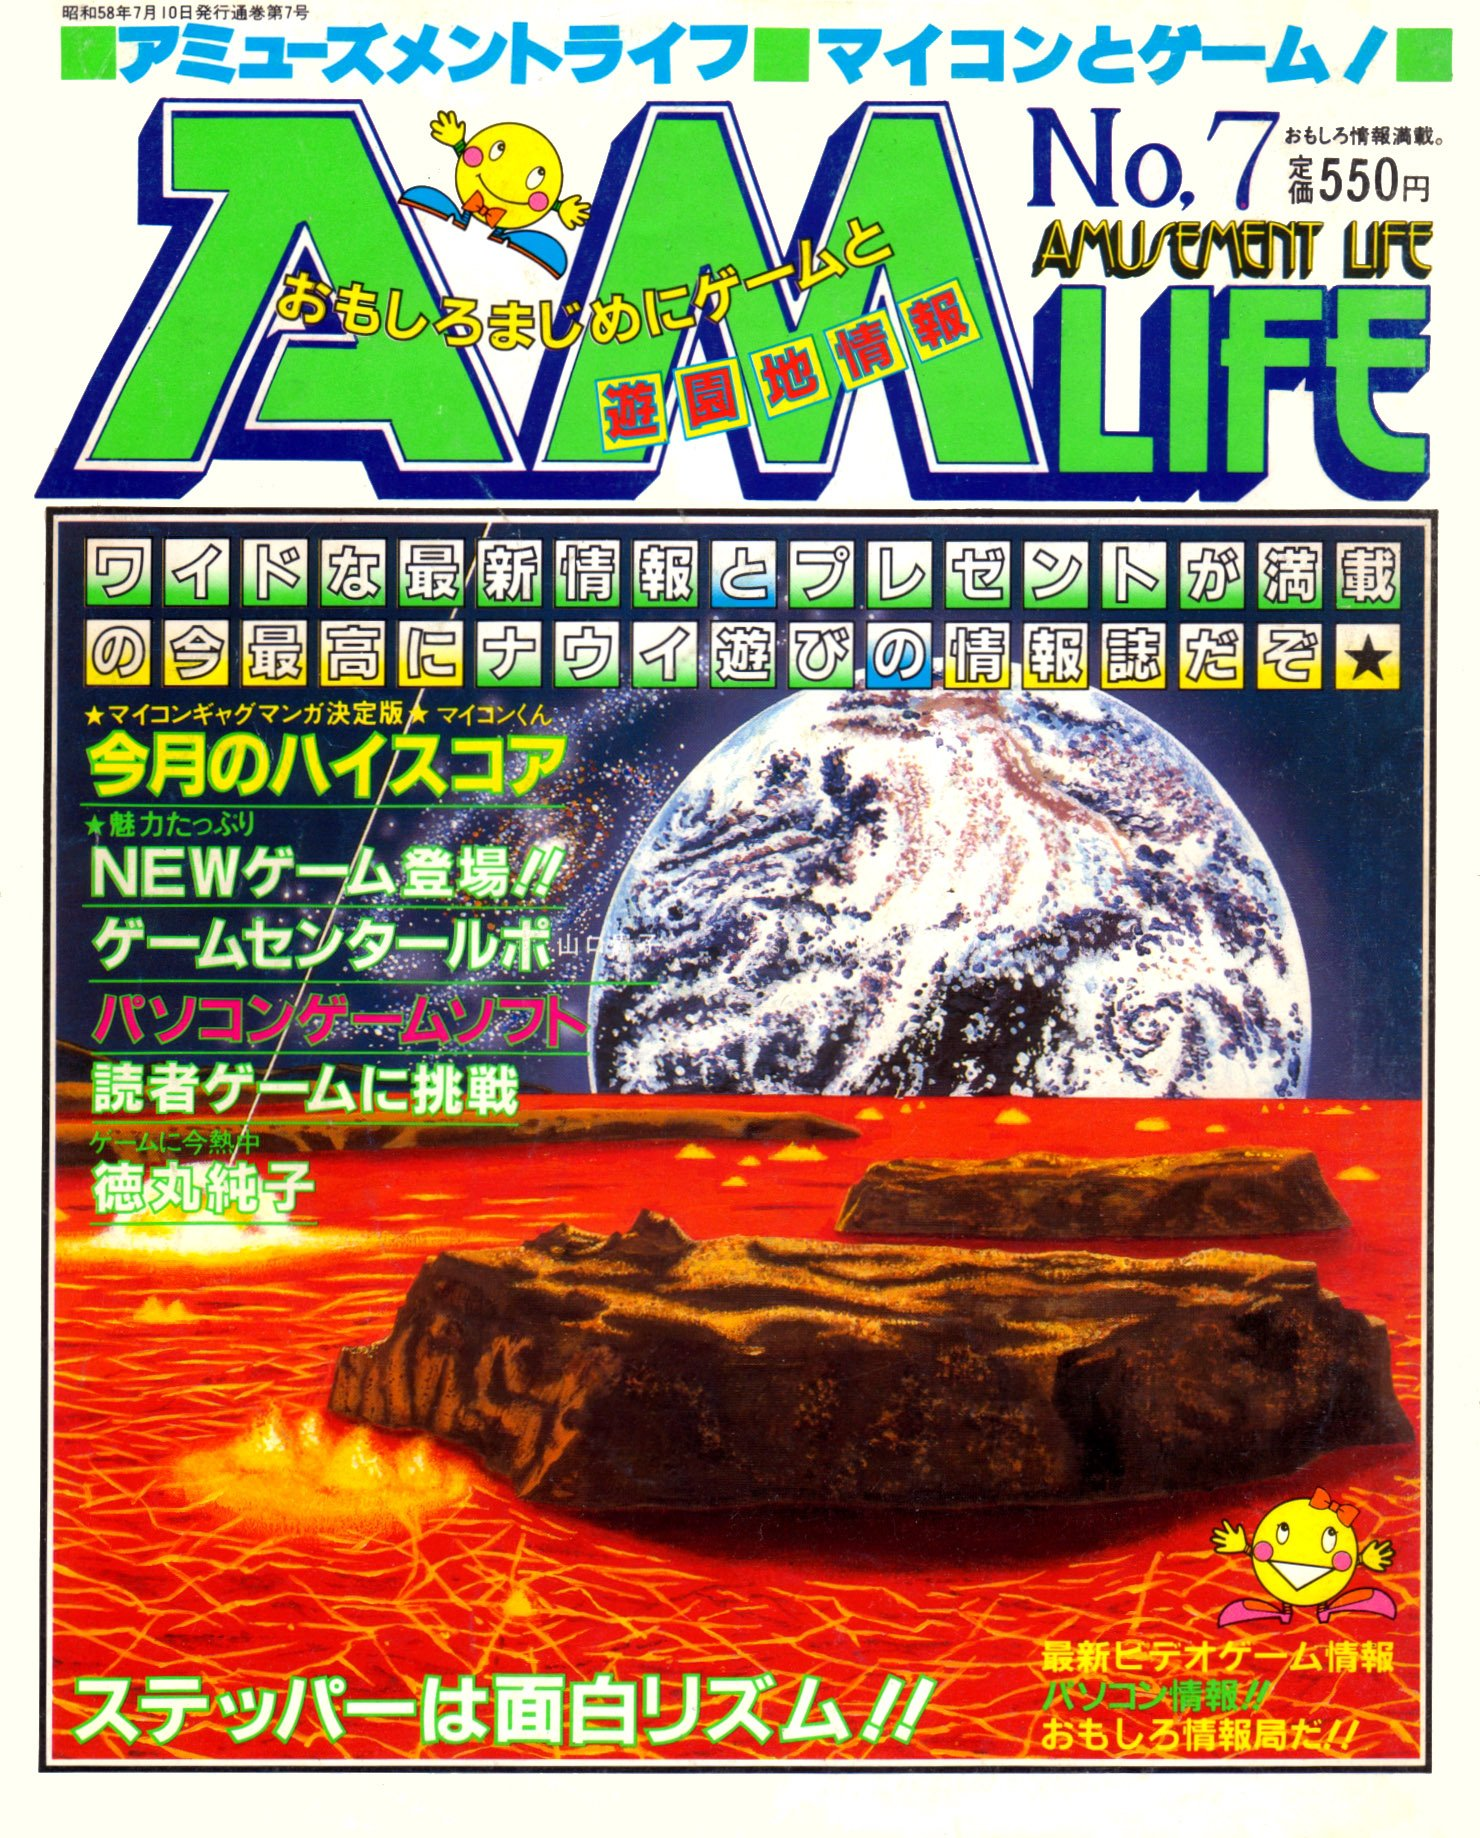 Amusement Life Issue 07 (July 1983)